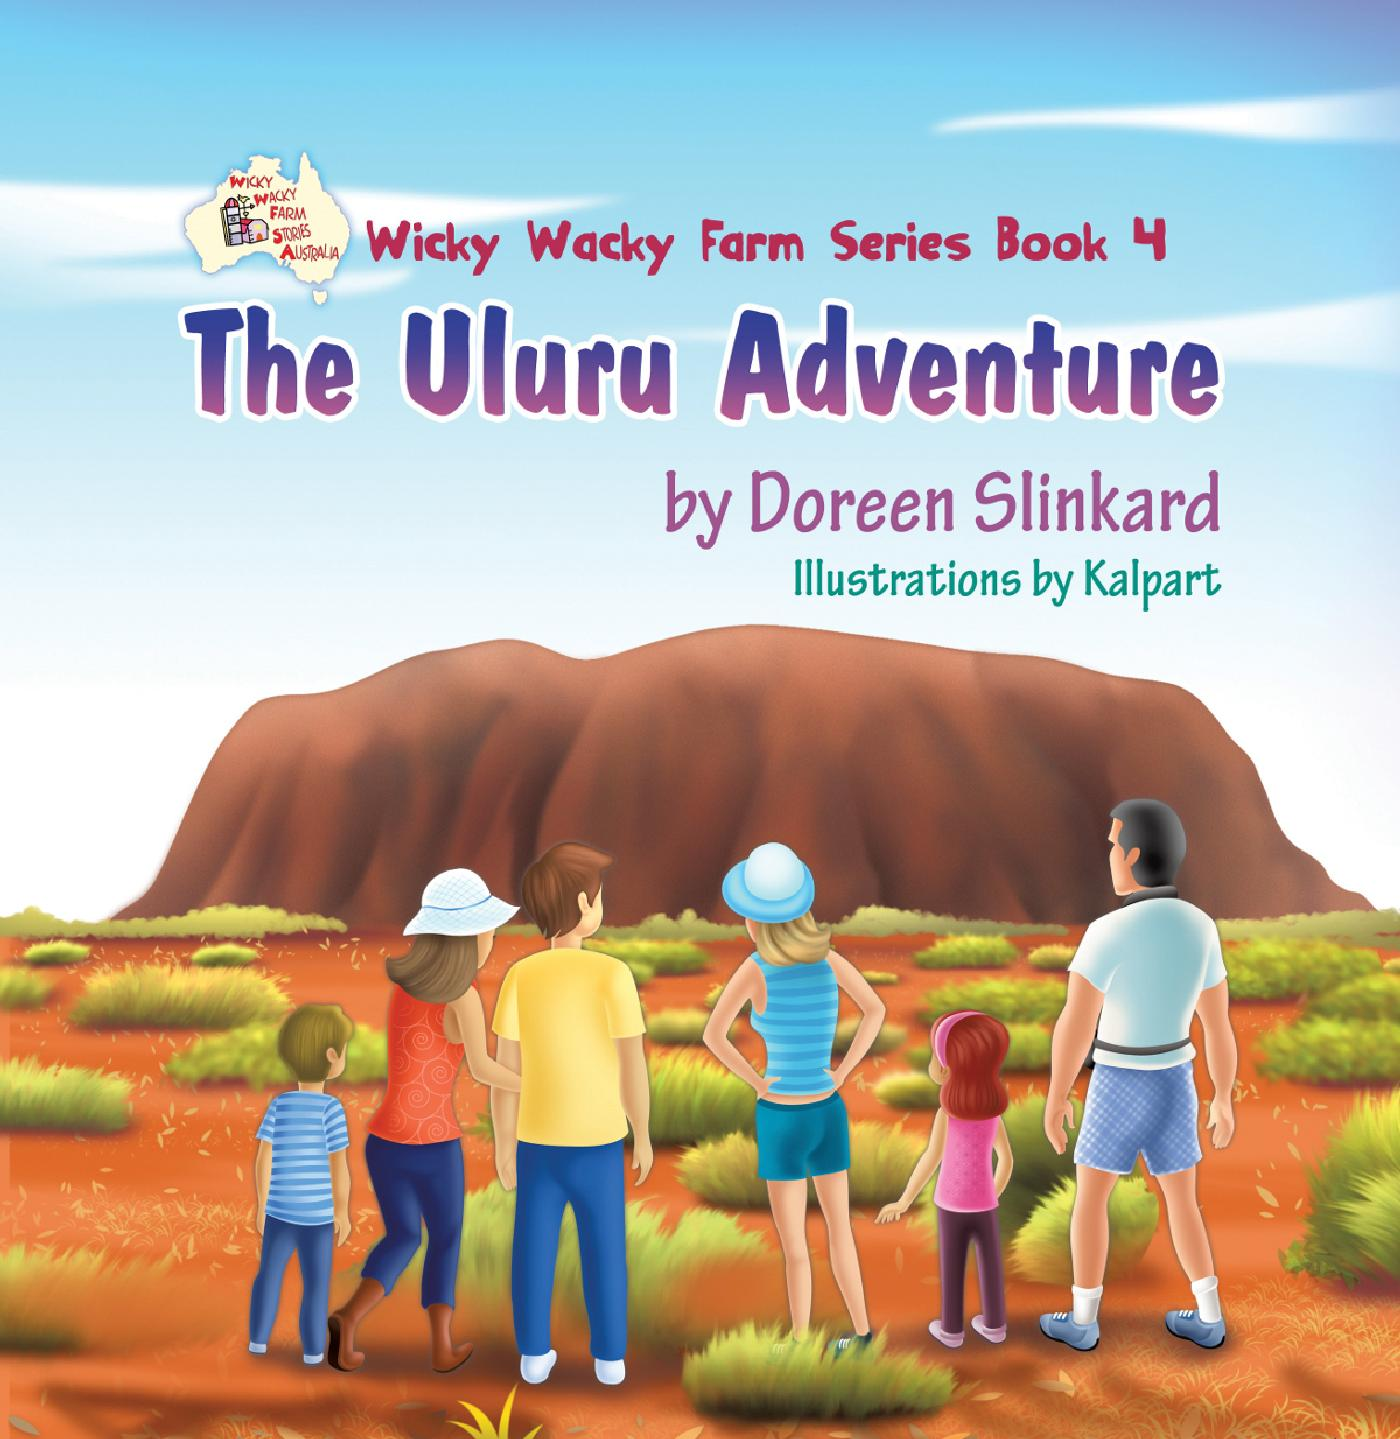 THE ULURU ADVENTURE: WICKY WACKY FARM SERIES BOOK 4